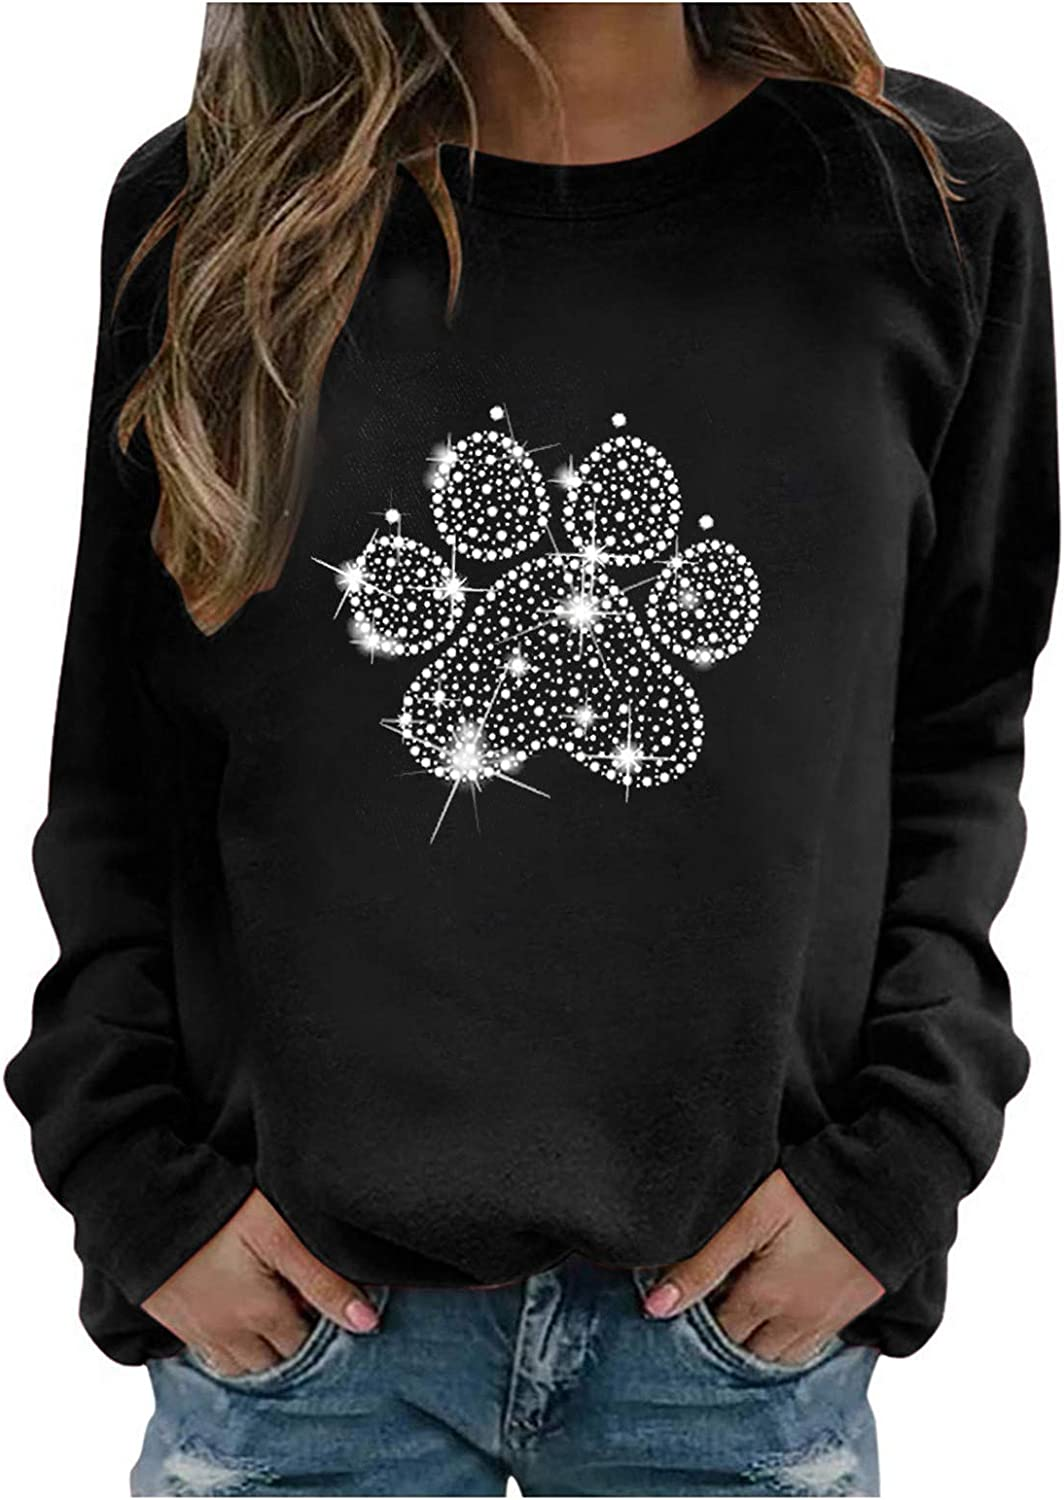 Pullover Tops for Women,Women's Print Rhinestone Long Sleeve Hoodies Casual Loose Hooded Top Shirts Blouse